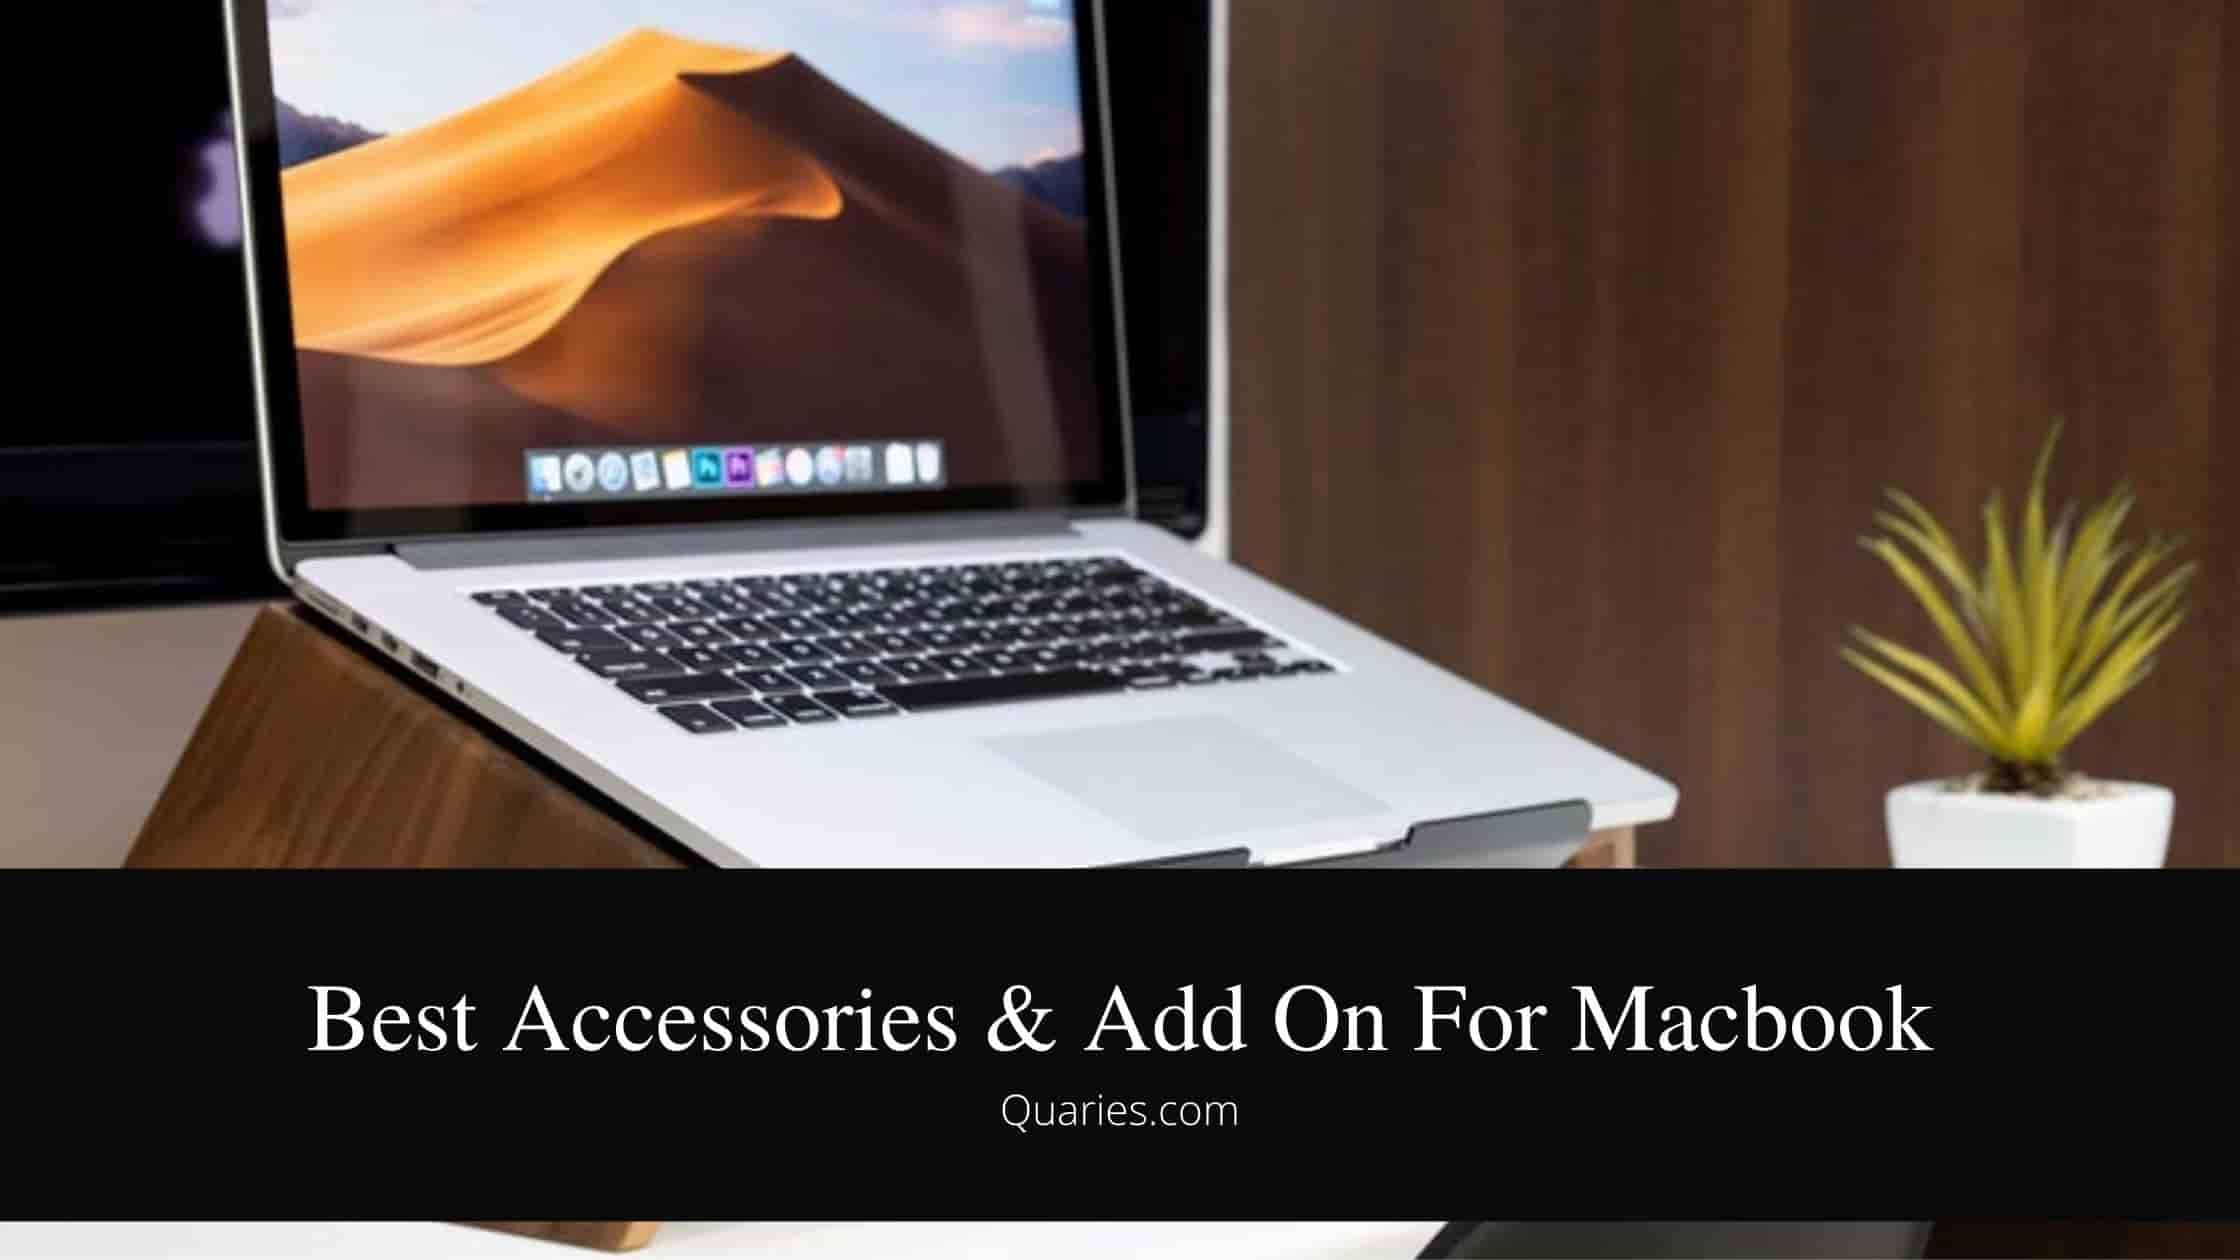 Best Accessories & Add On For Macbook